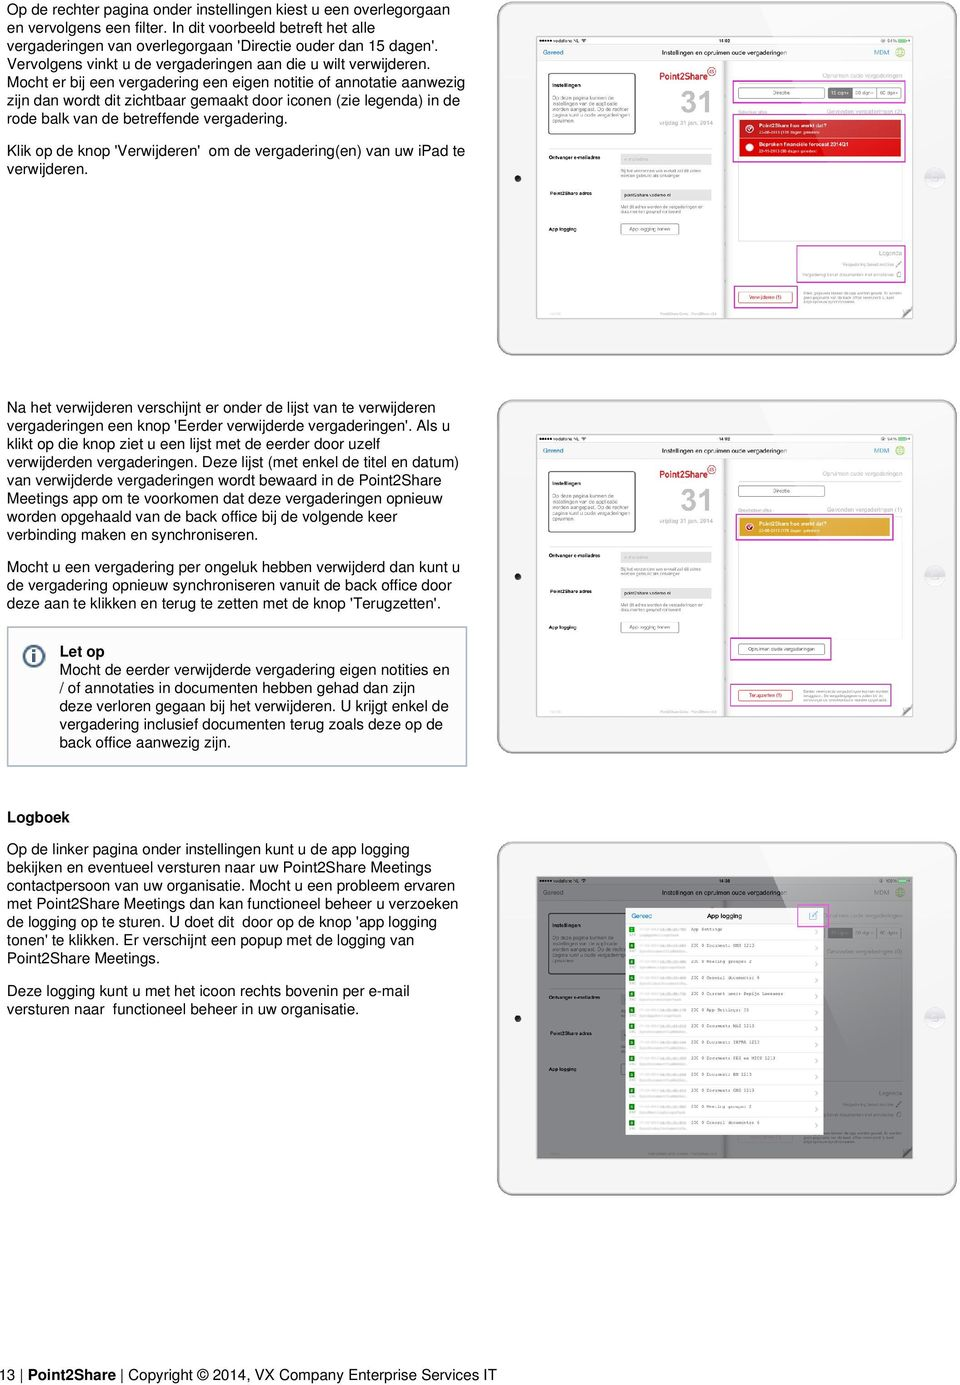 titel word document zichtbaar op macbook